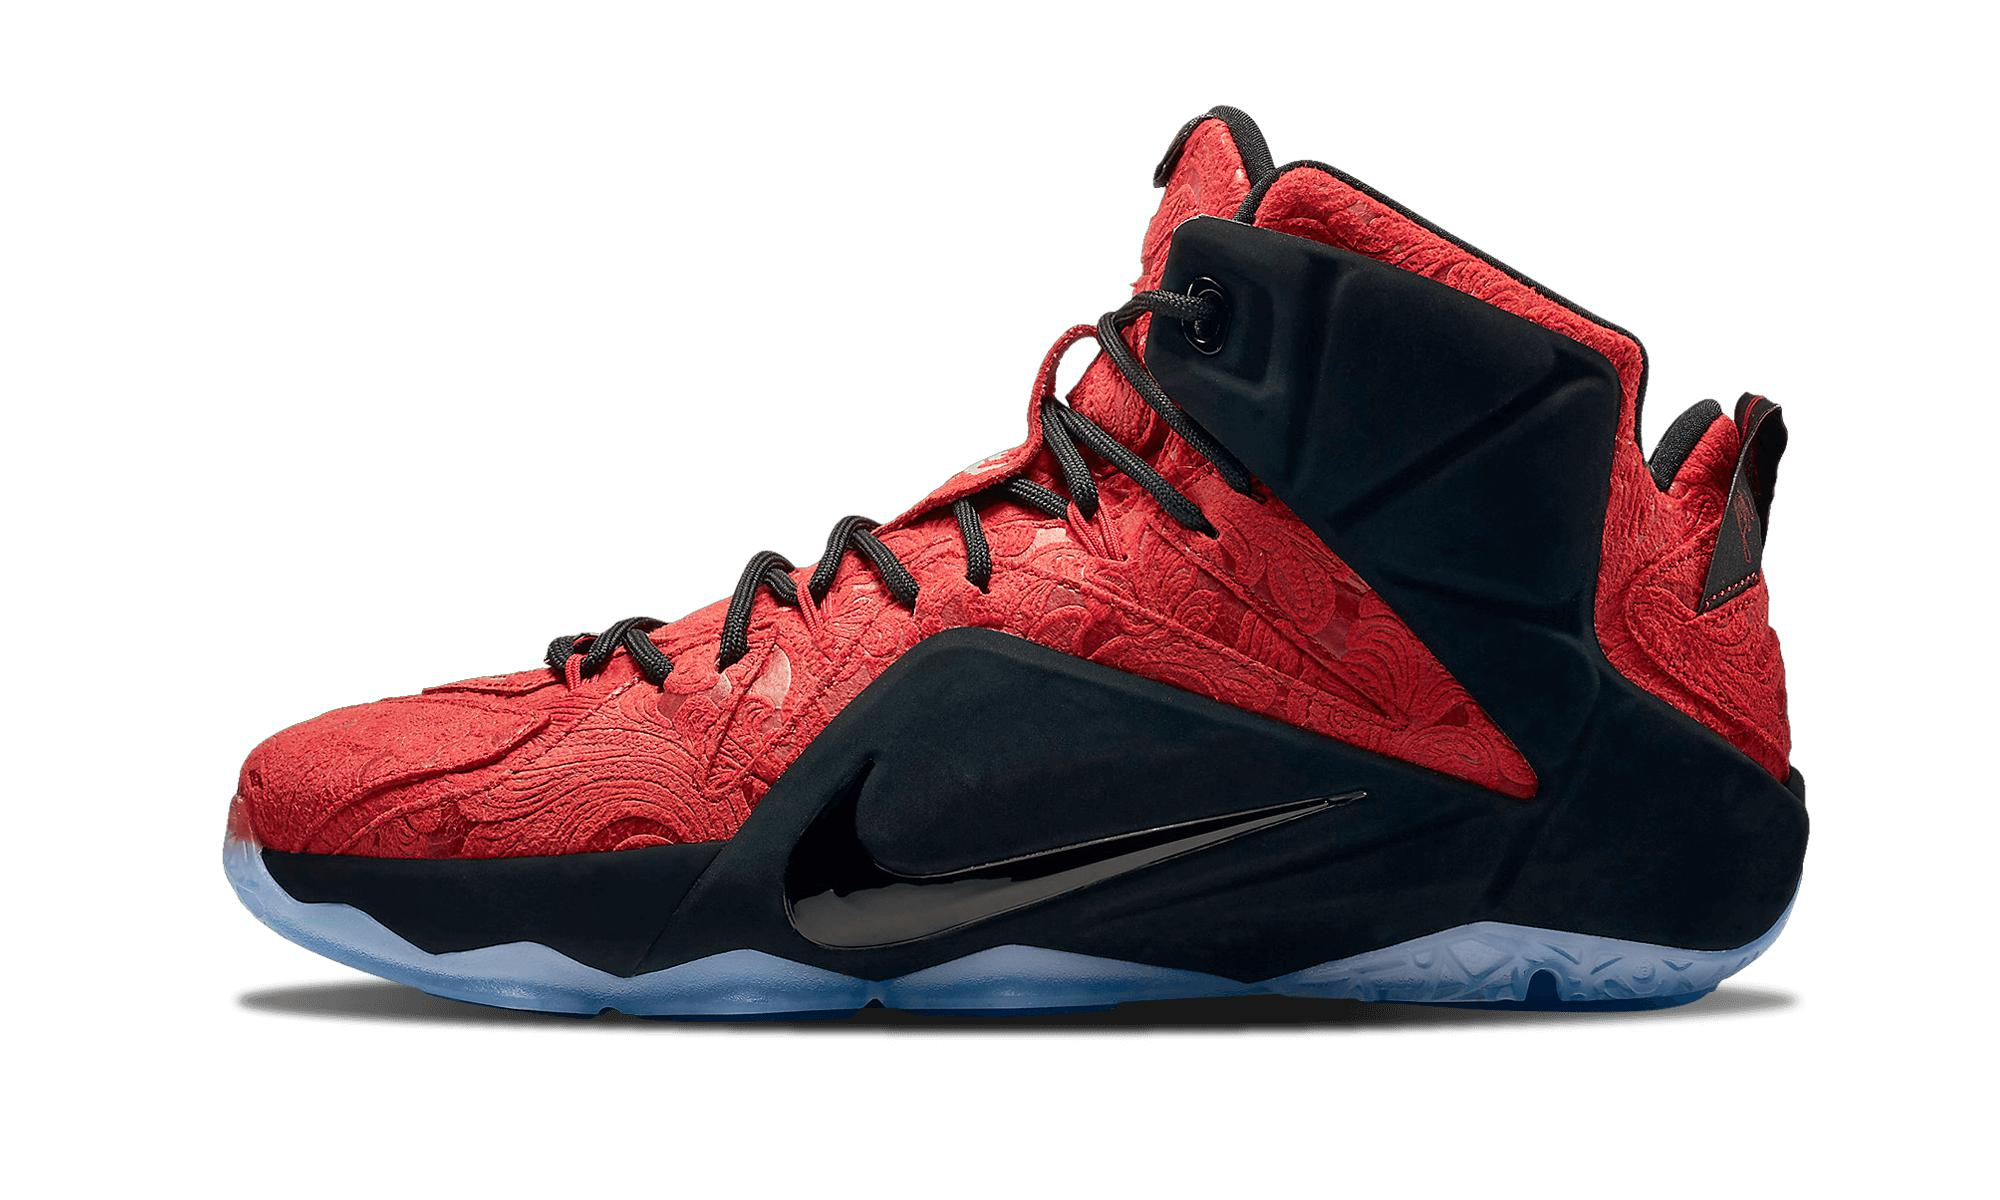 bfa114bb47d7 Lyst - Nike Lebron 12 Ext in Red for Men - Save 17%